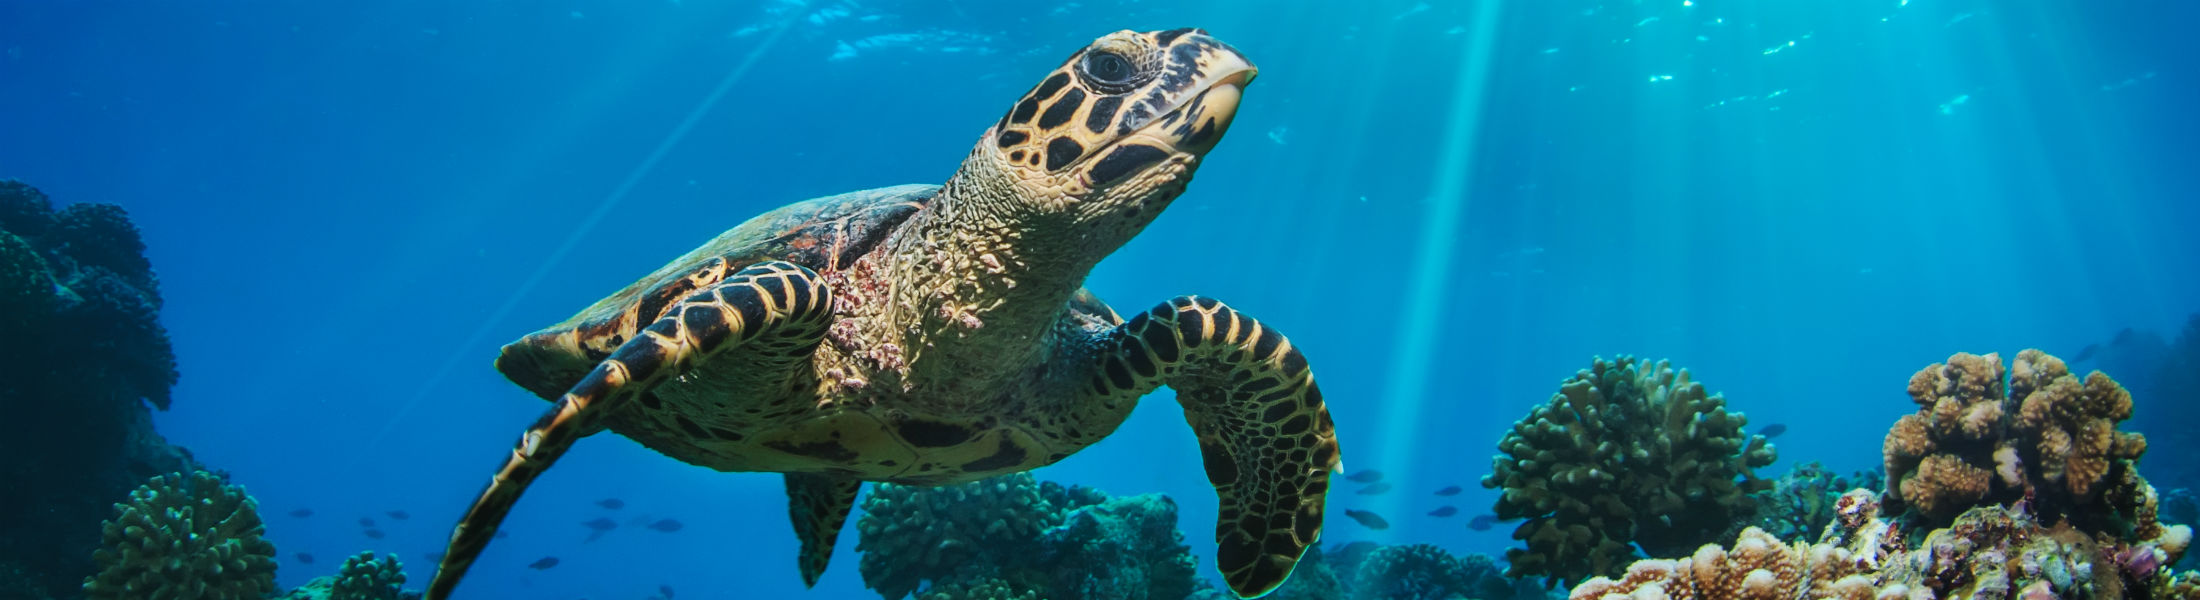 Maldivian Sea Turtle Floating Up And Over Coral reef